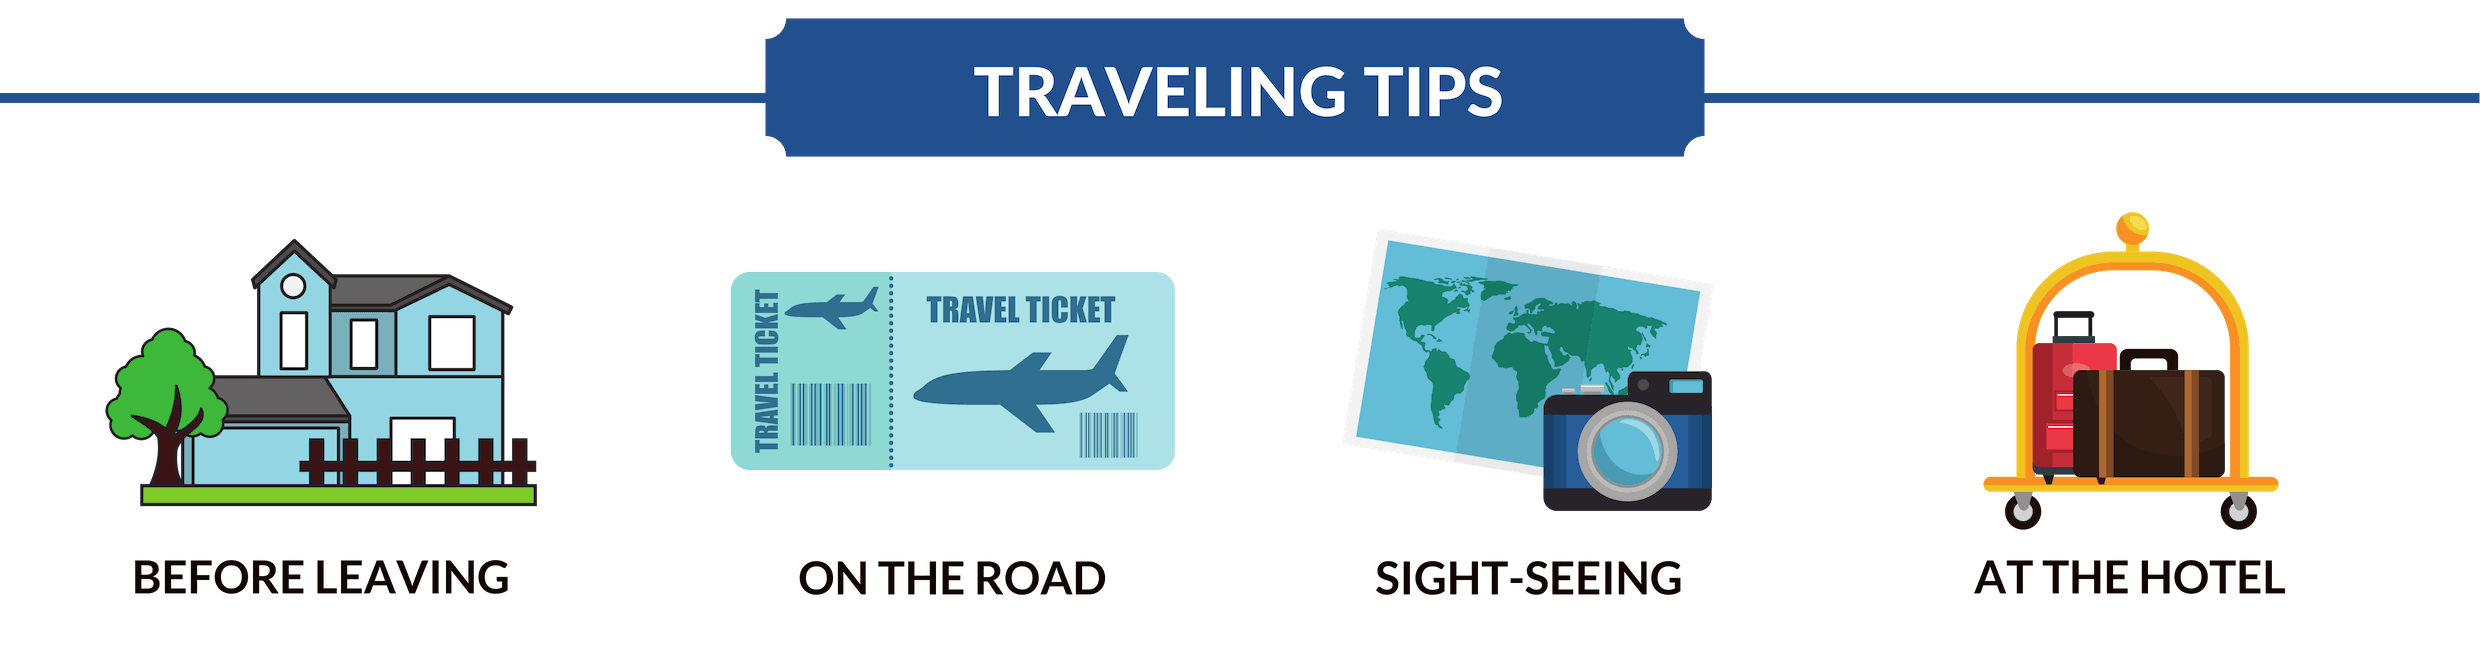 Banner for Traveling Tips